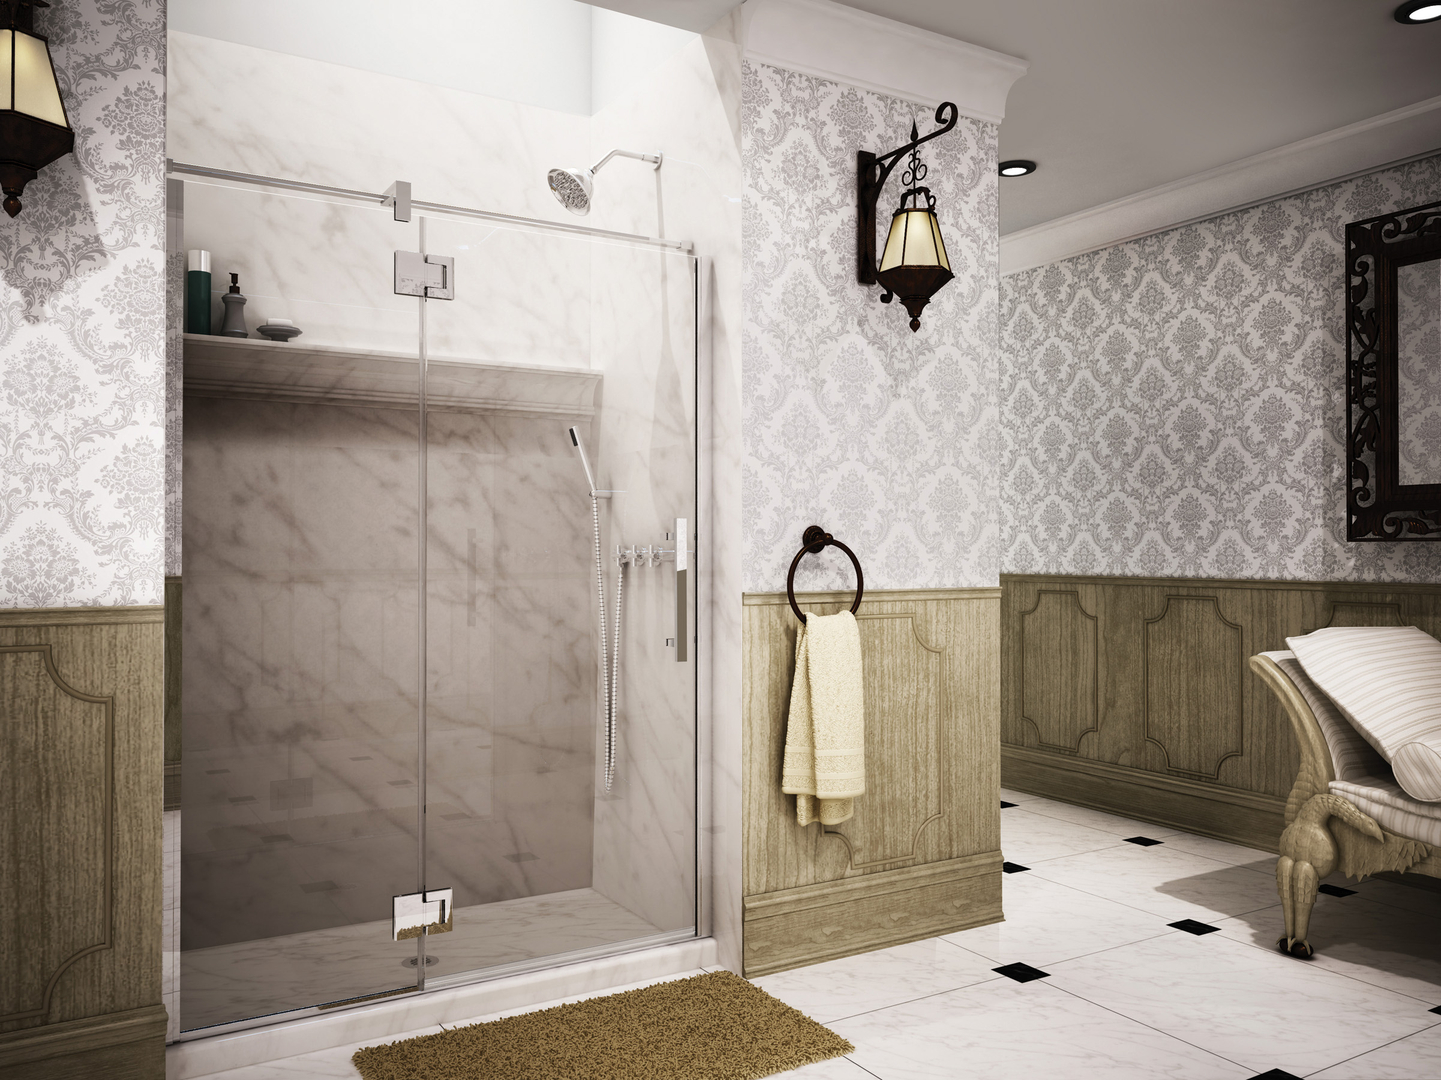 bathroom remodeling kitchens quantum showrooms memphis tn - Bathroom Remodel Memphis